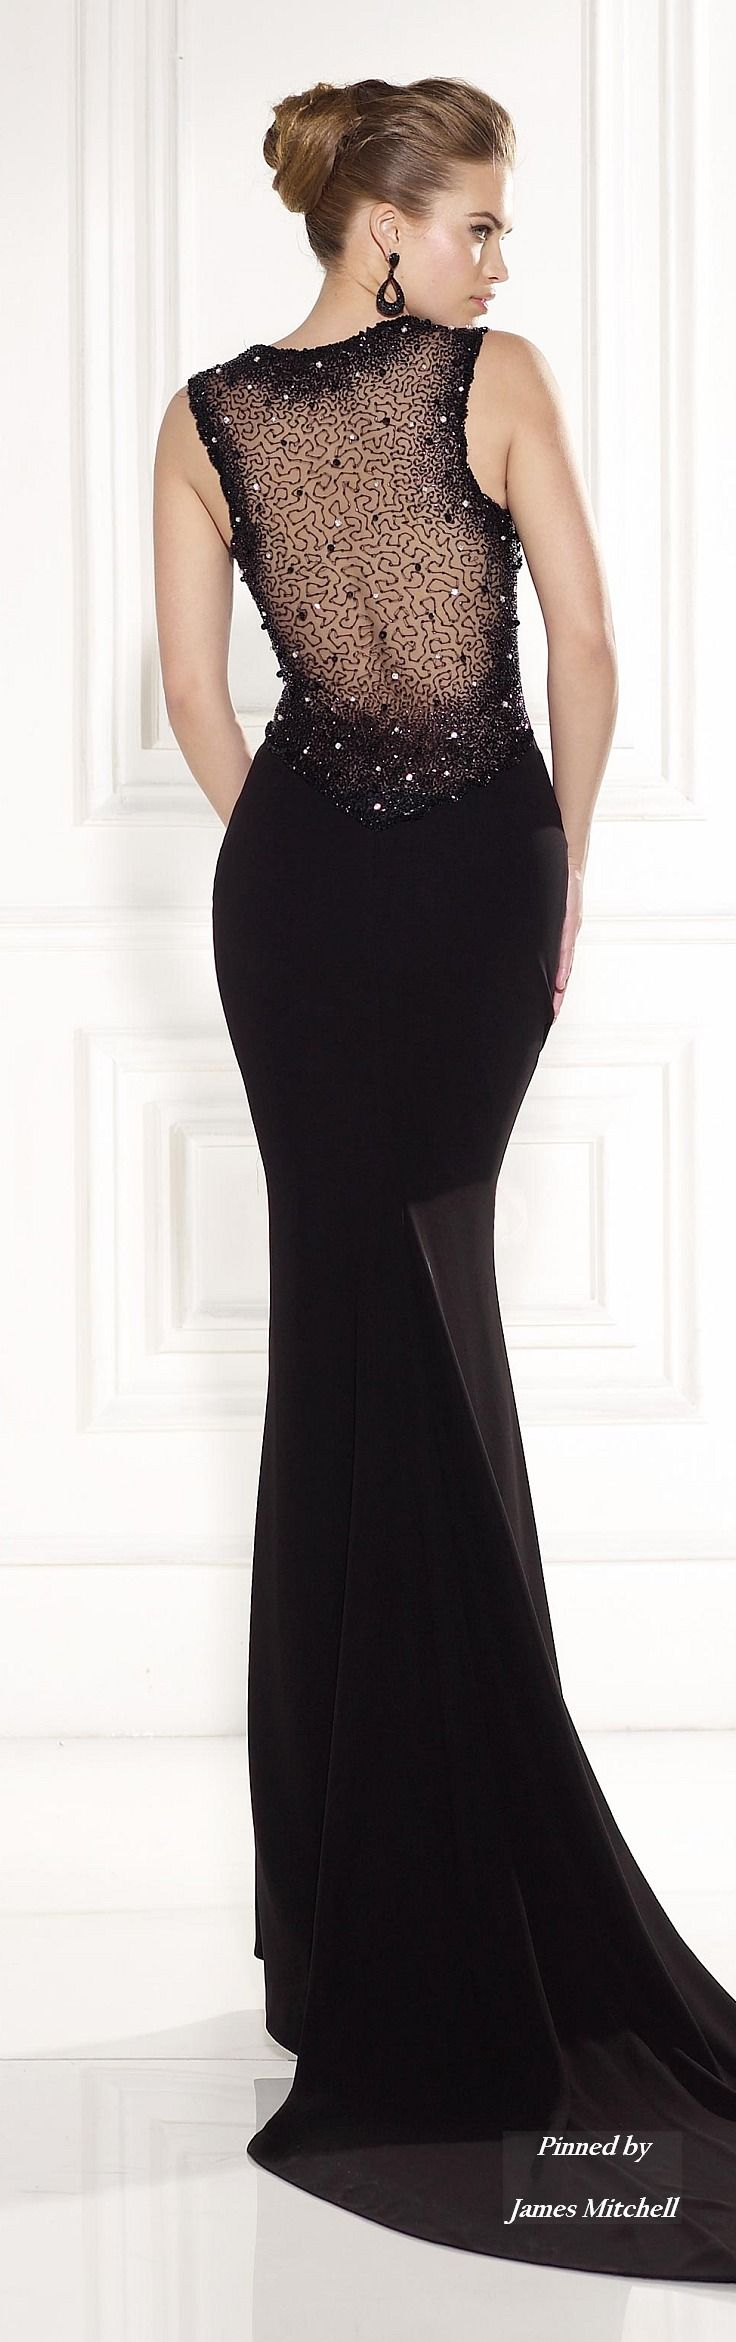 Elegant MG Fashion Black Tie Dresses